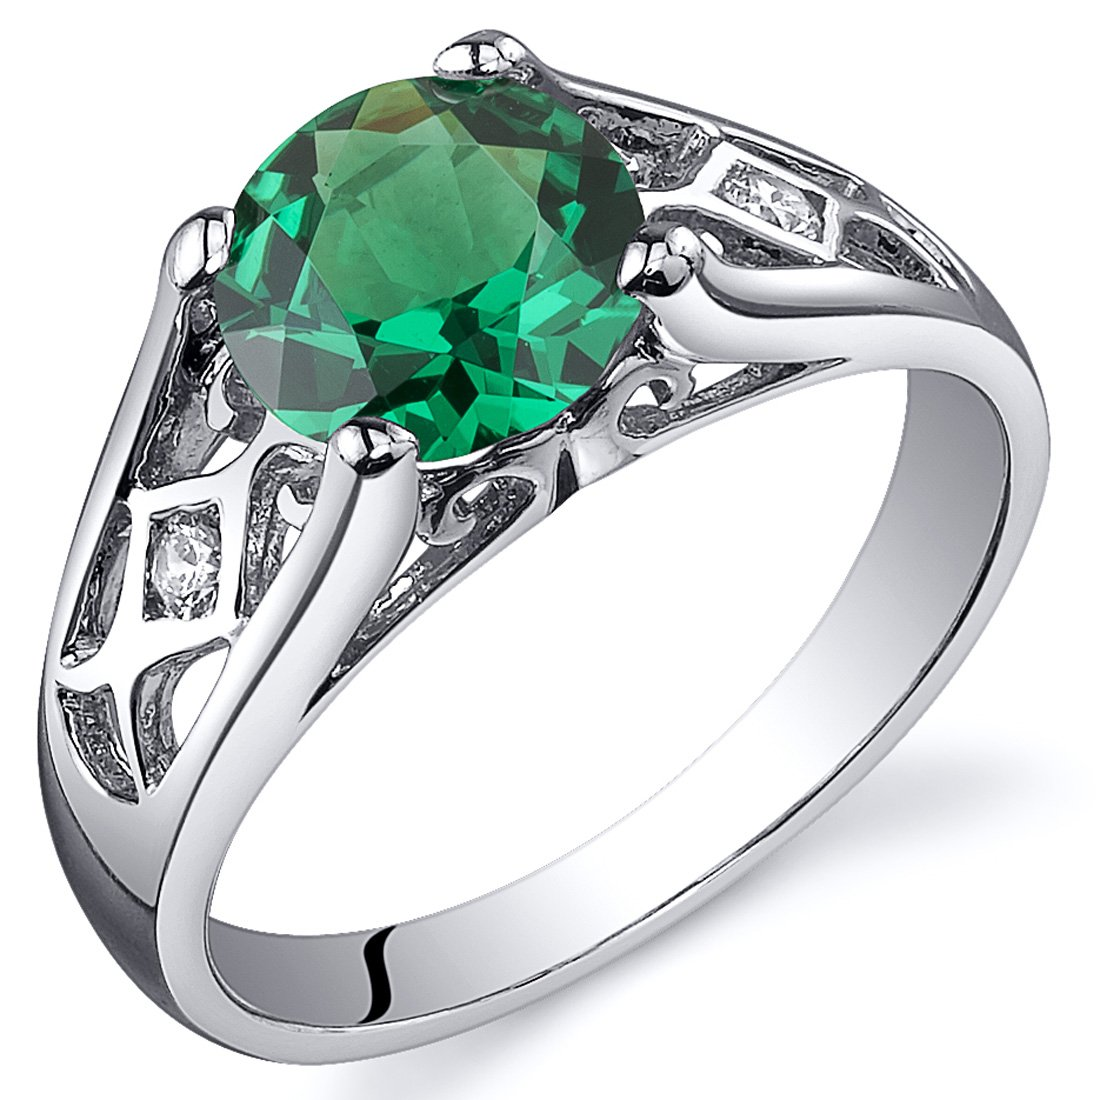 Simulated Emerald Cathedral Ring Sterling Silver Sizes 5 to 9 Peora